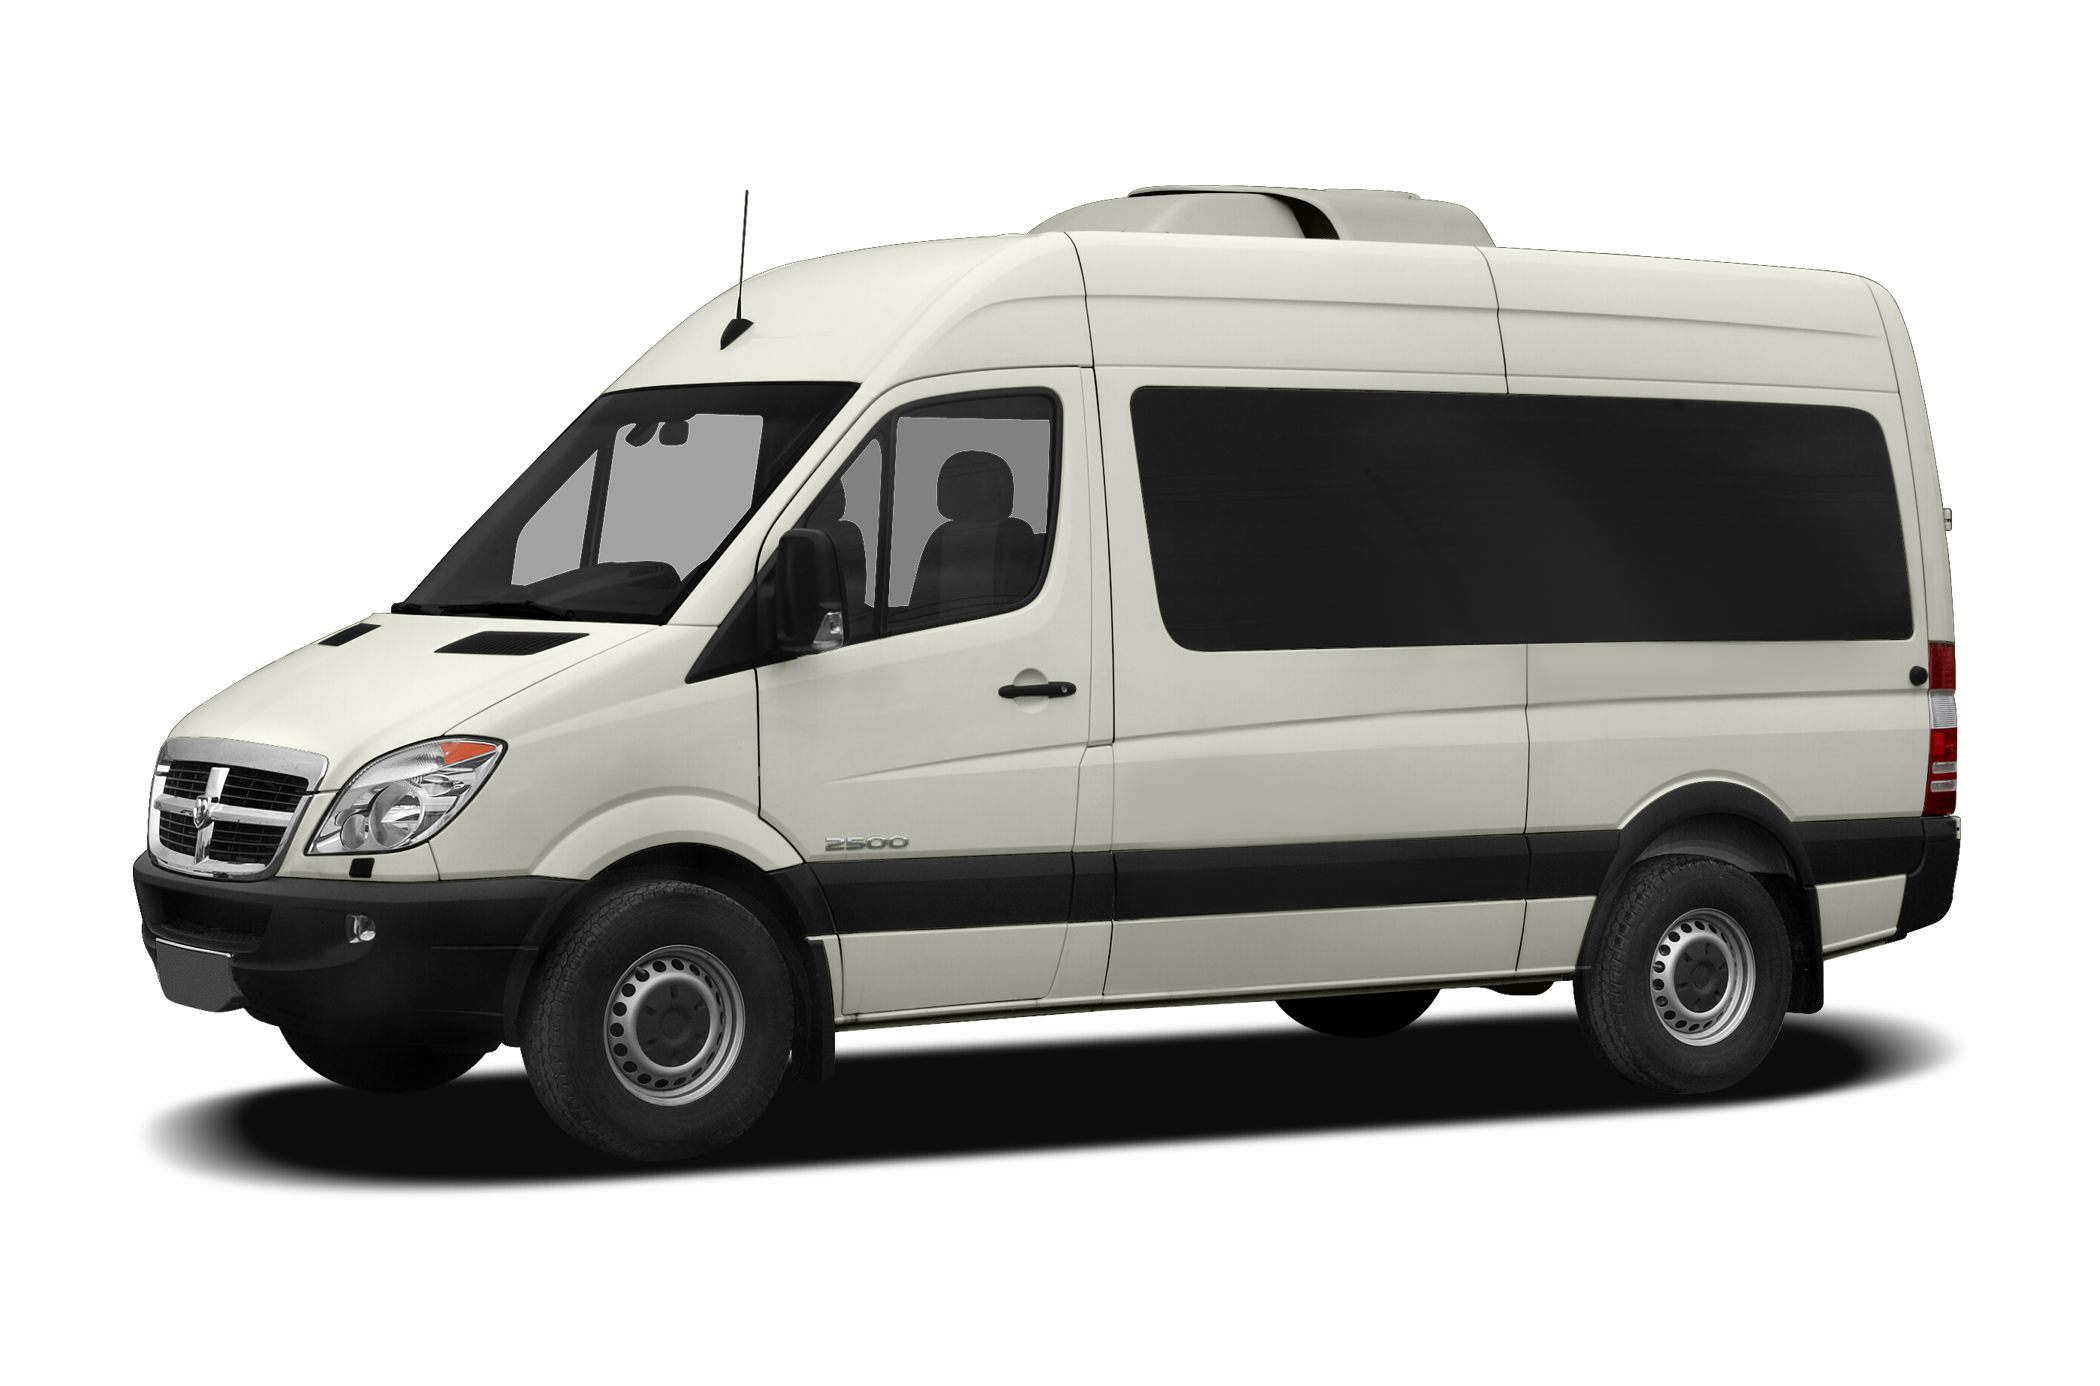 2009DodgeSprinter Wagon 2500